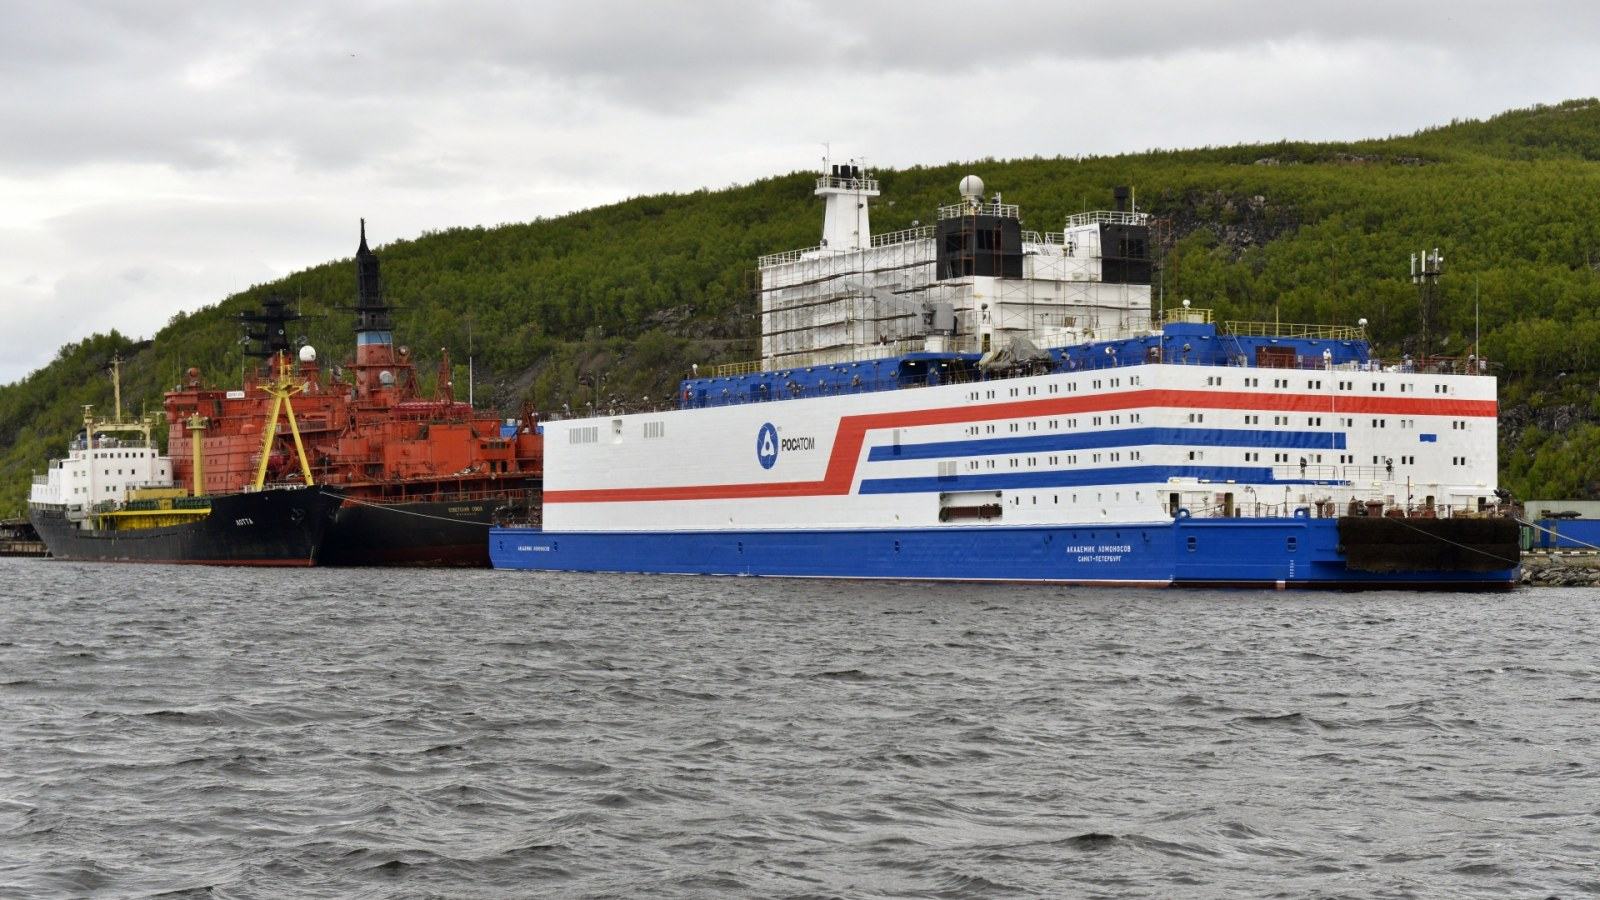 Russia's Nuclear Power Plant Ship Raises U S  Fears While Questions